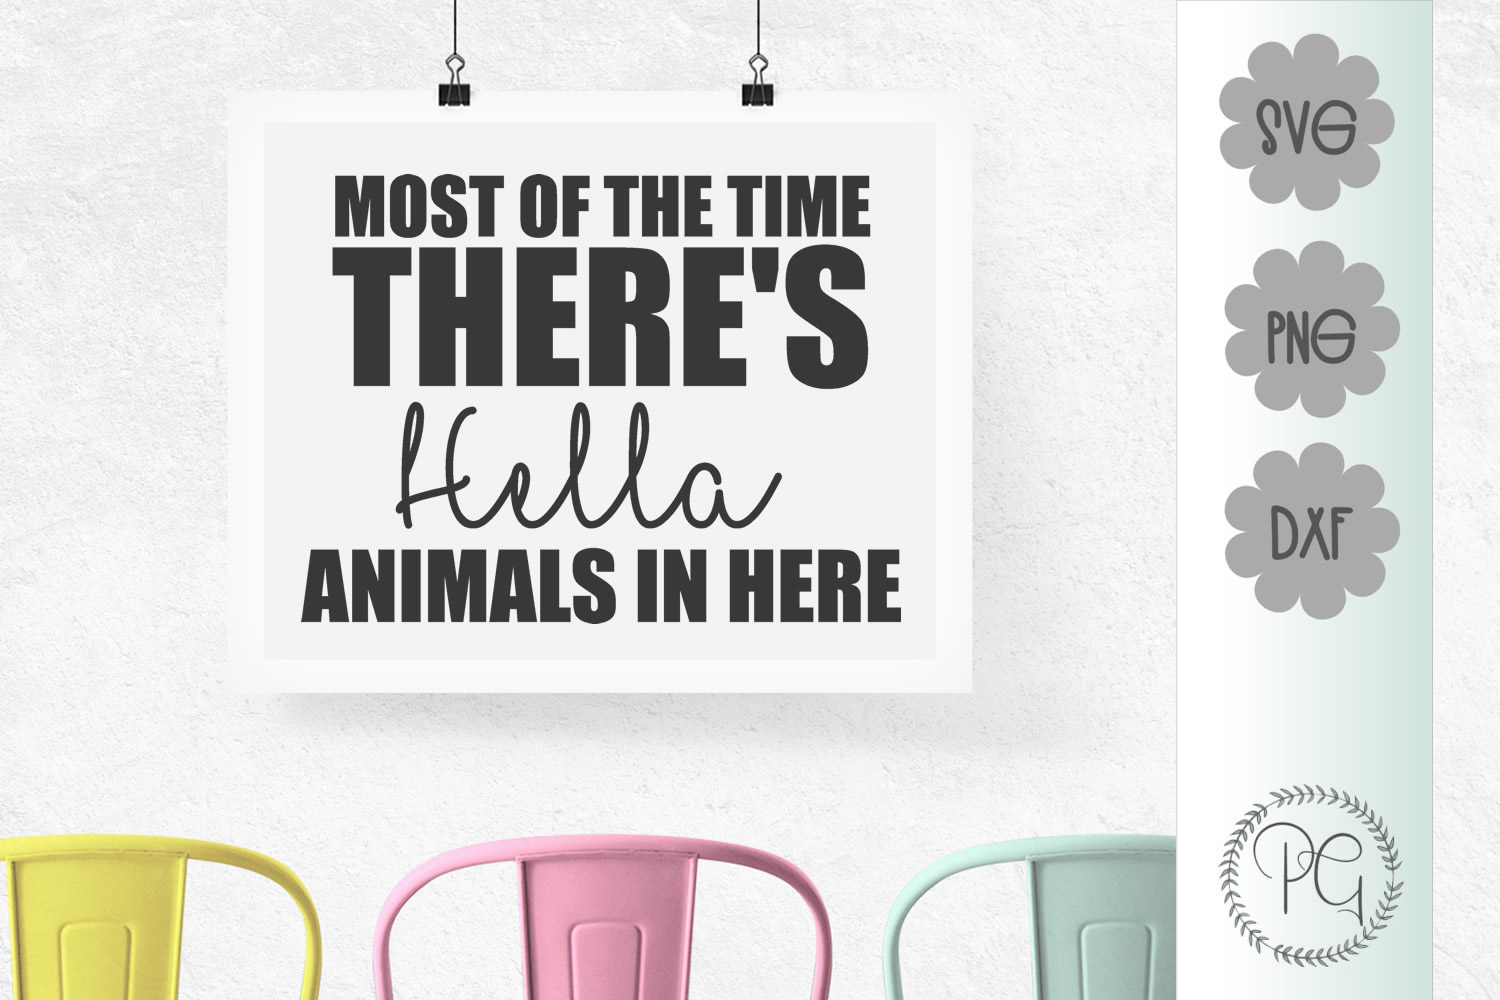 Hella Animals In Here SVG PNG JPG DXF example image 1